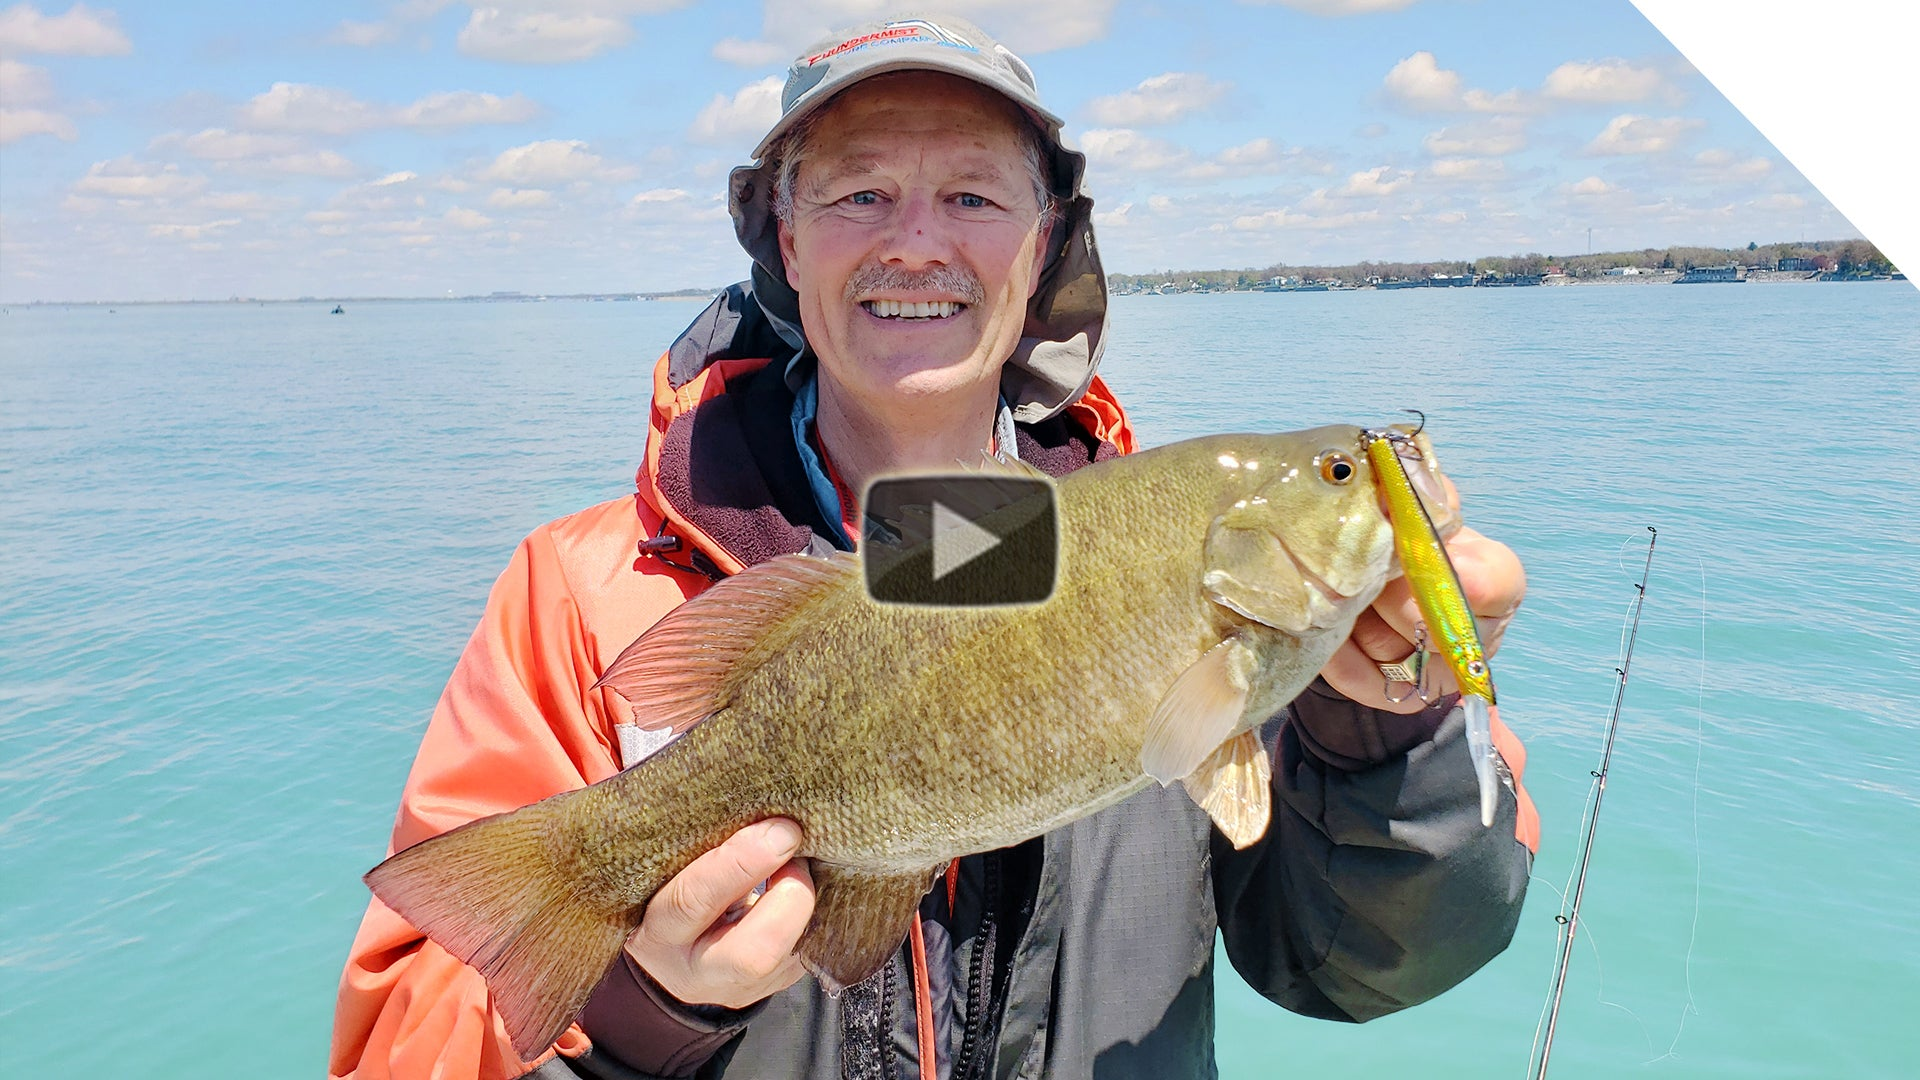 Trolling for smallmouth bass